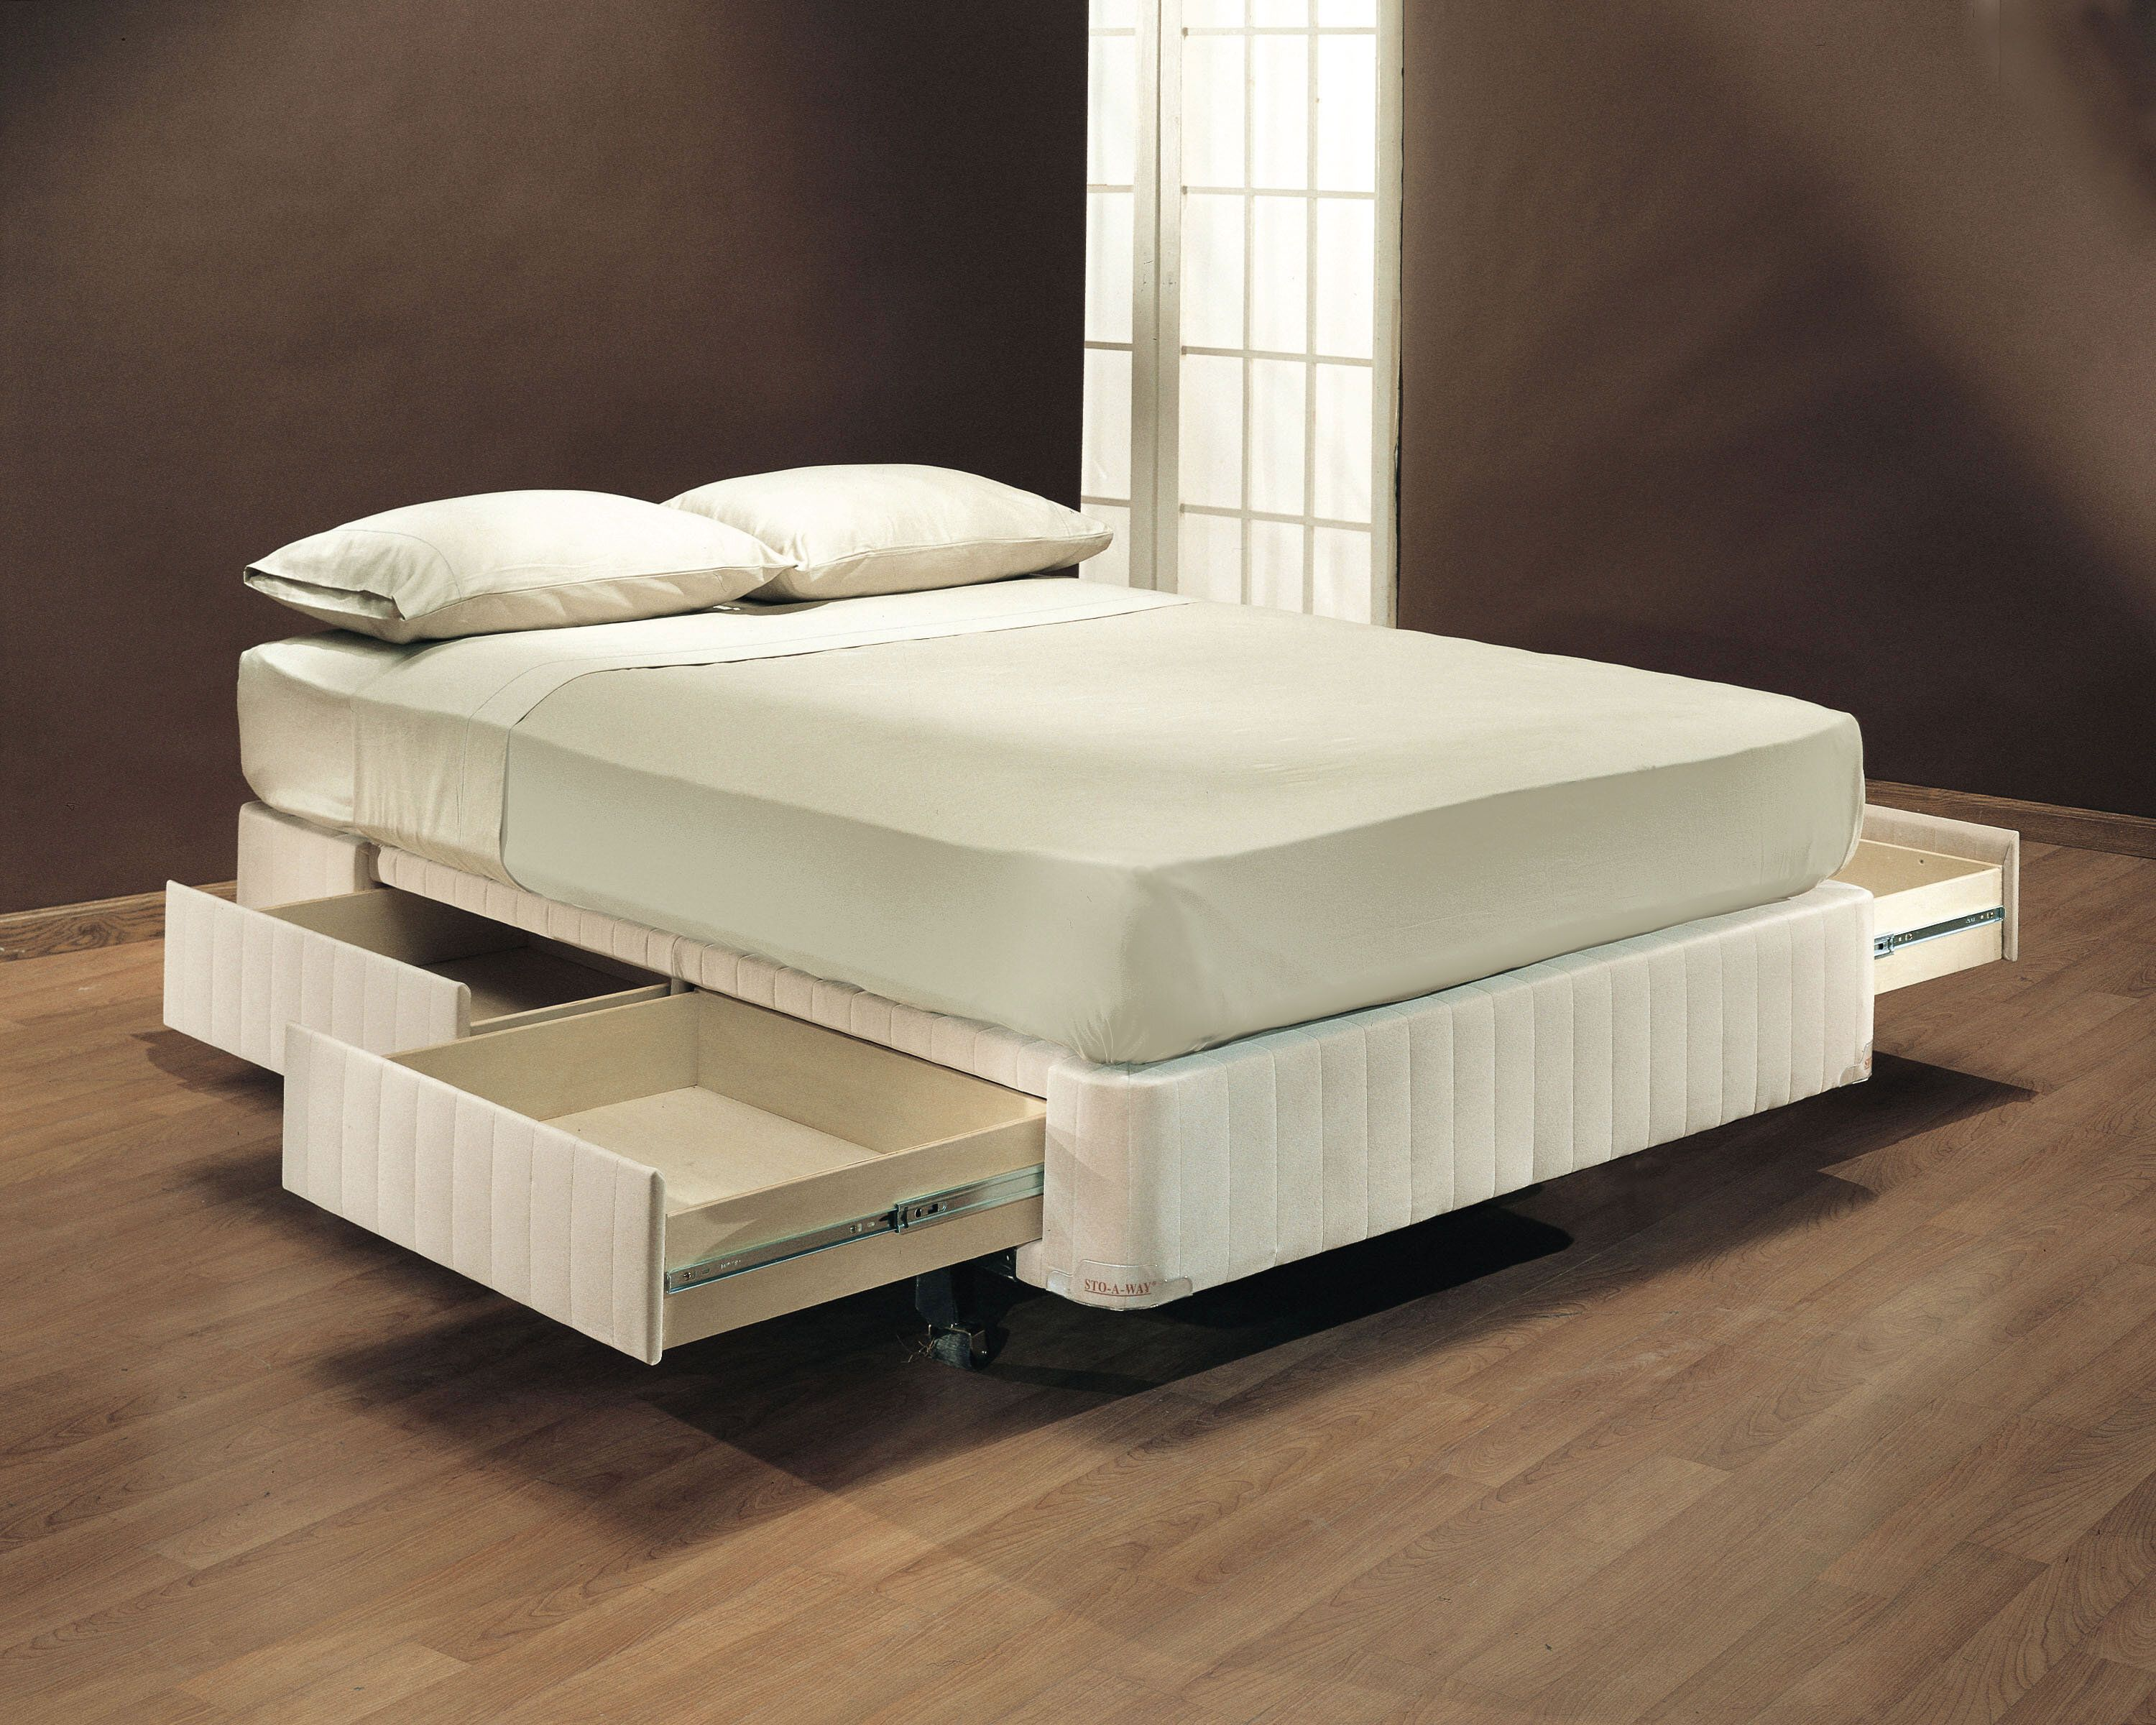 Hannigan Twin Daybed in 2020 Bed frame, Twin bed frame